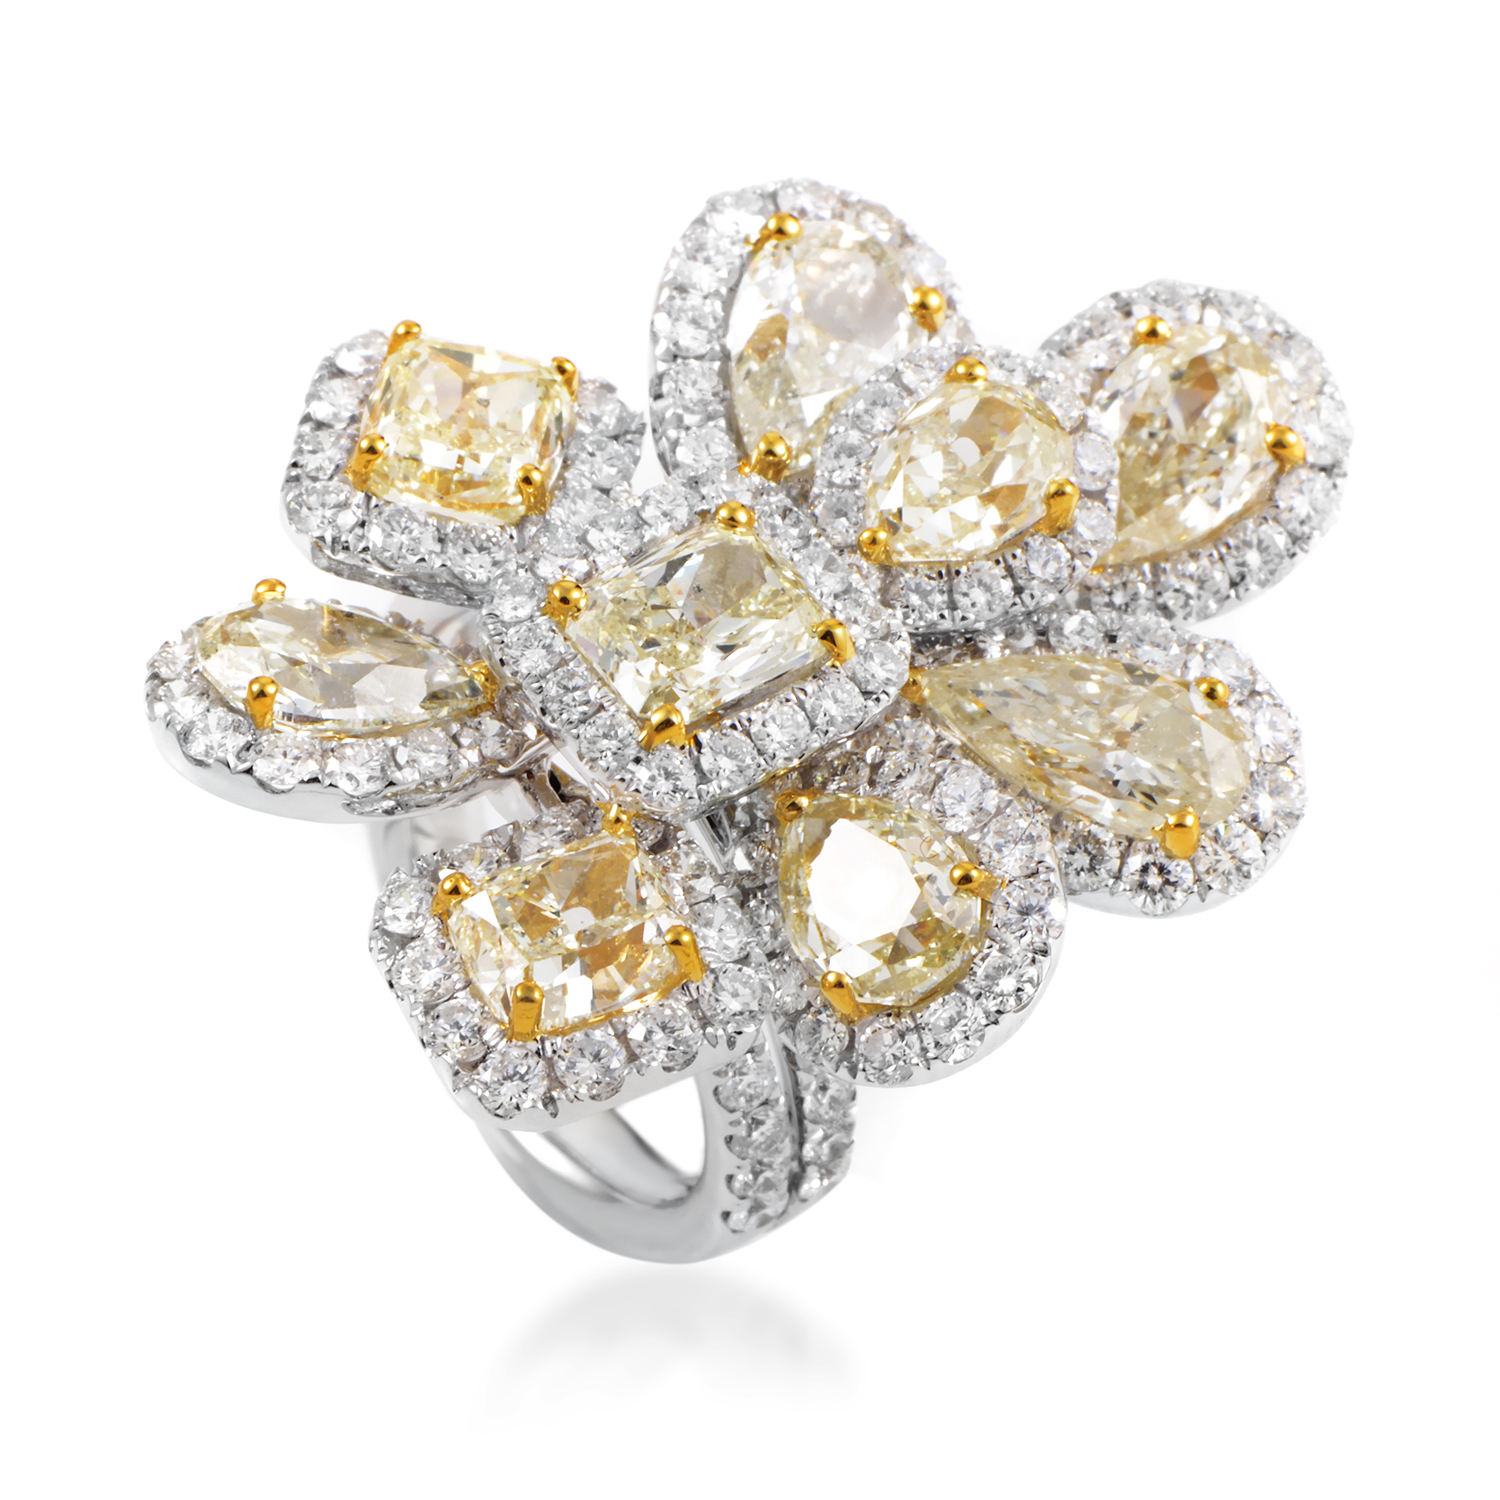 Women's 18K Multi-Tone Gold Diamond Cluster Cocktail Ring